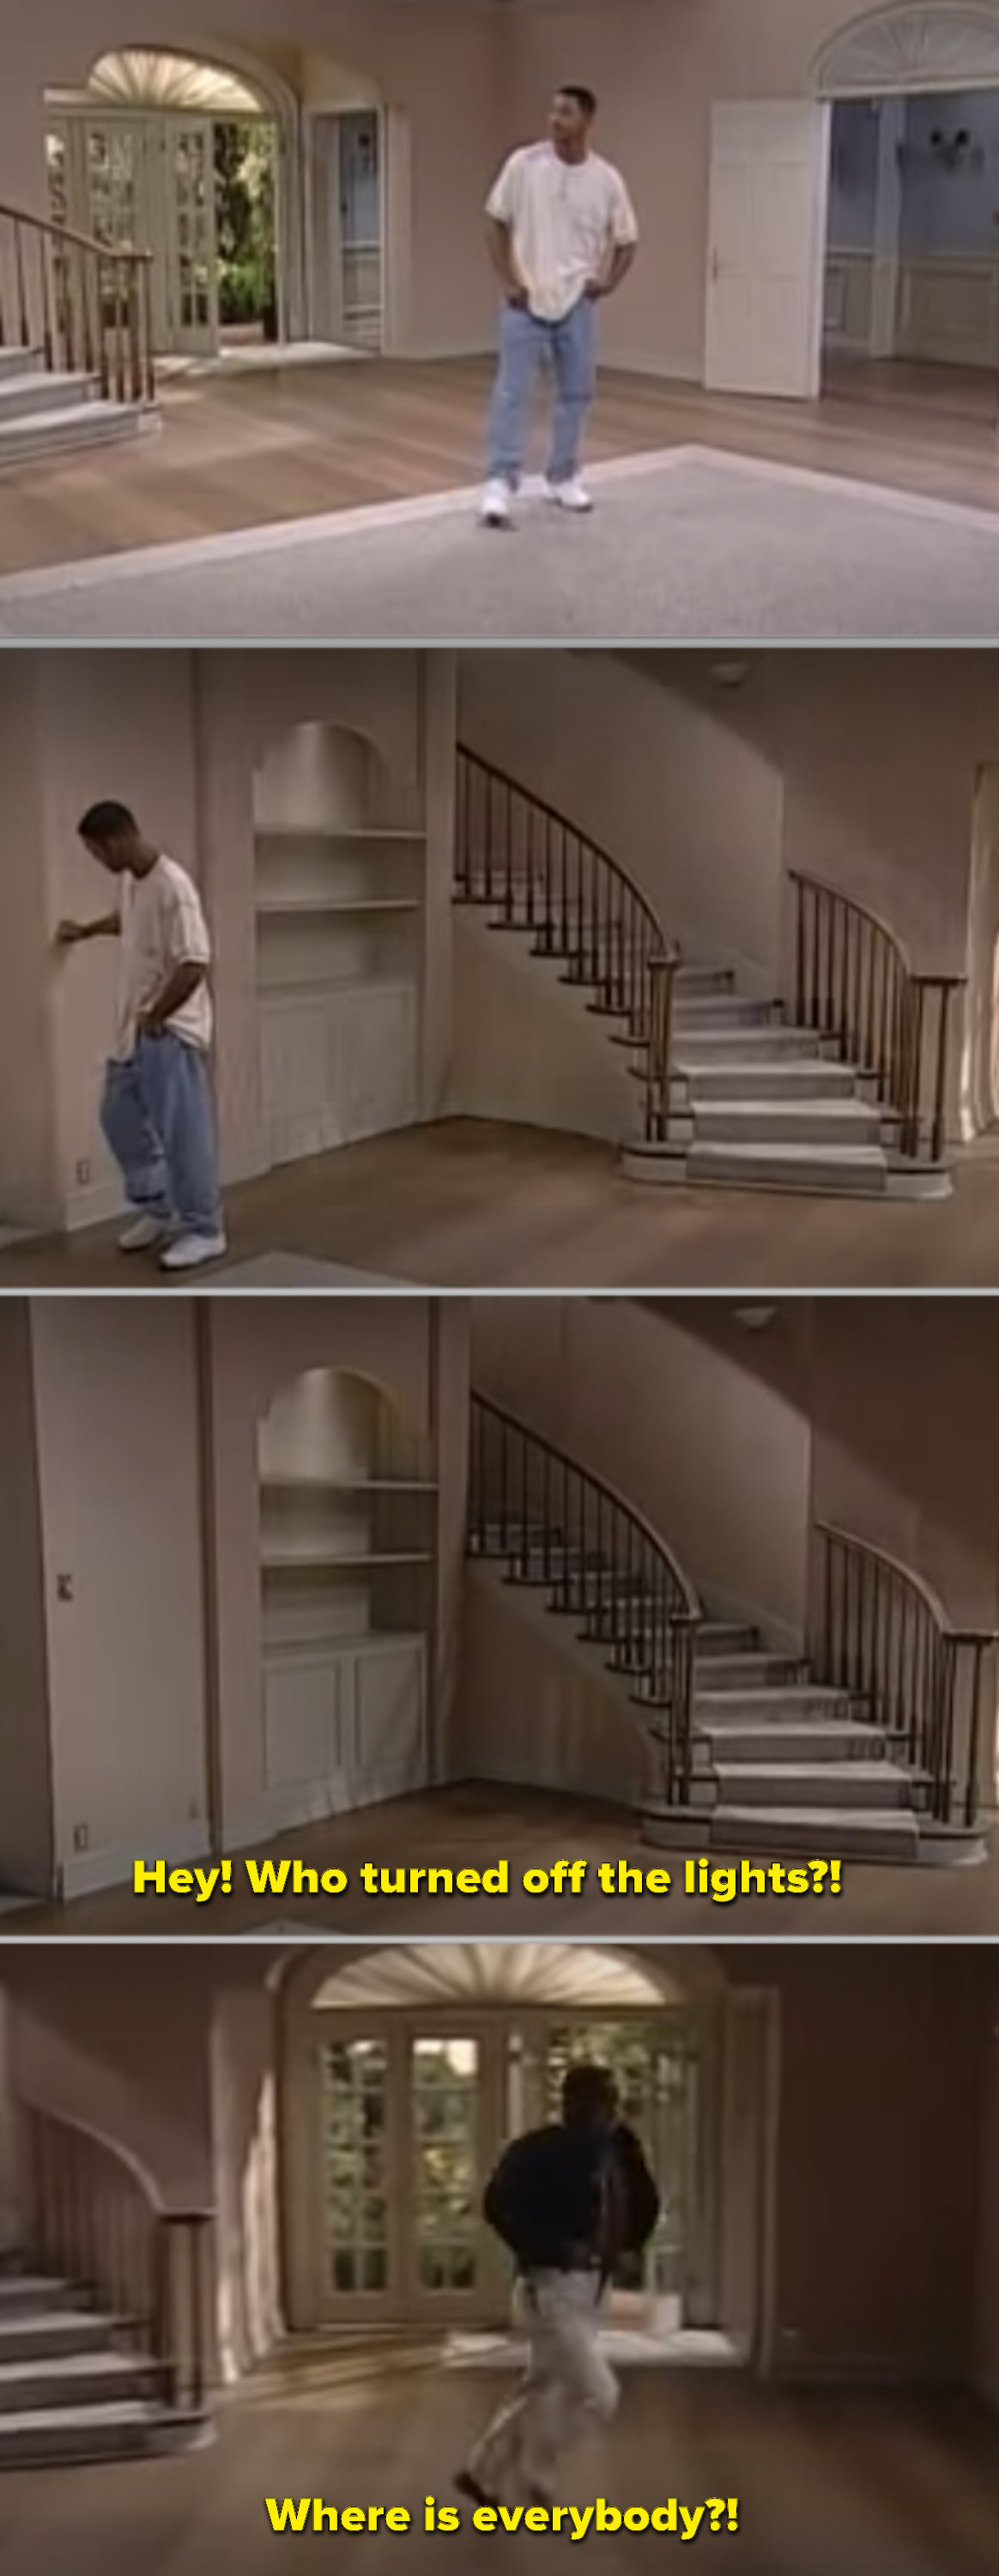 Will turning off the lights in the mansion, then Carlton running downstairs and realizing that everyone left without him